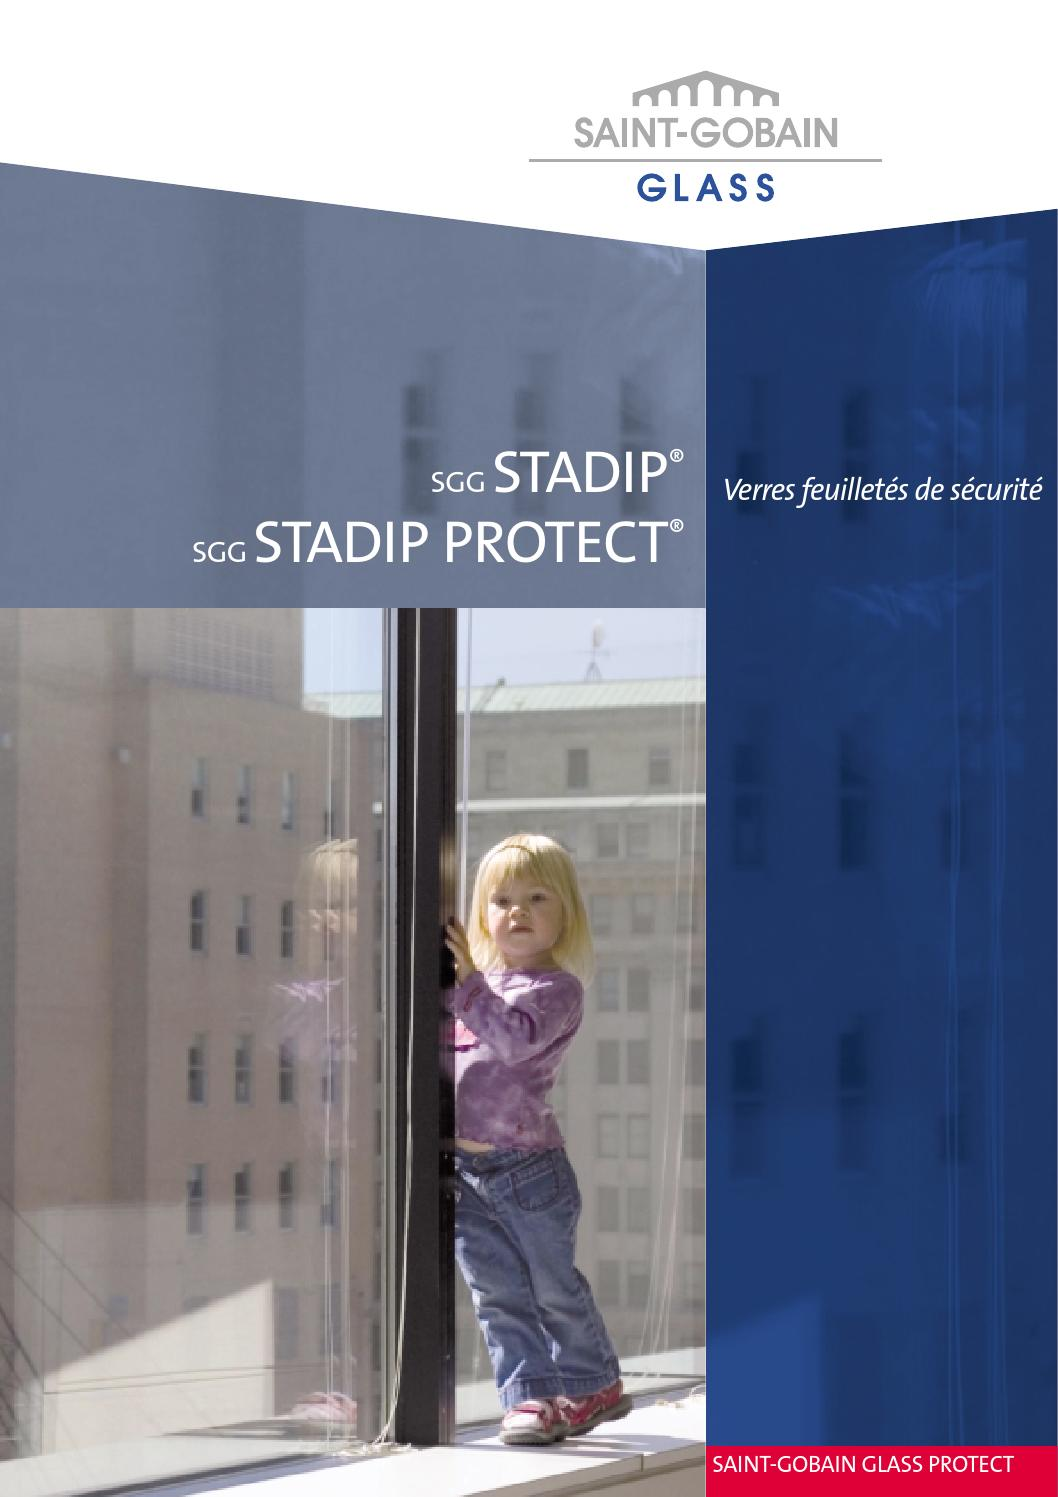 Double Vitrage Anti Effraction Saint Gobain sgg stadip et sgg stadip protect 12 09bramial - issuu